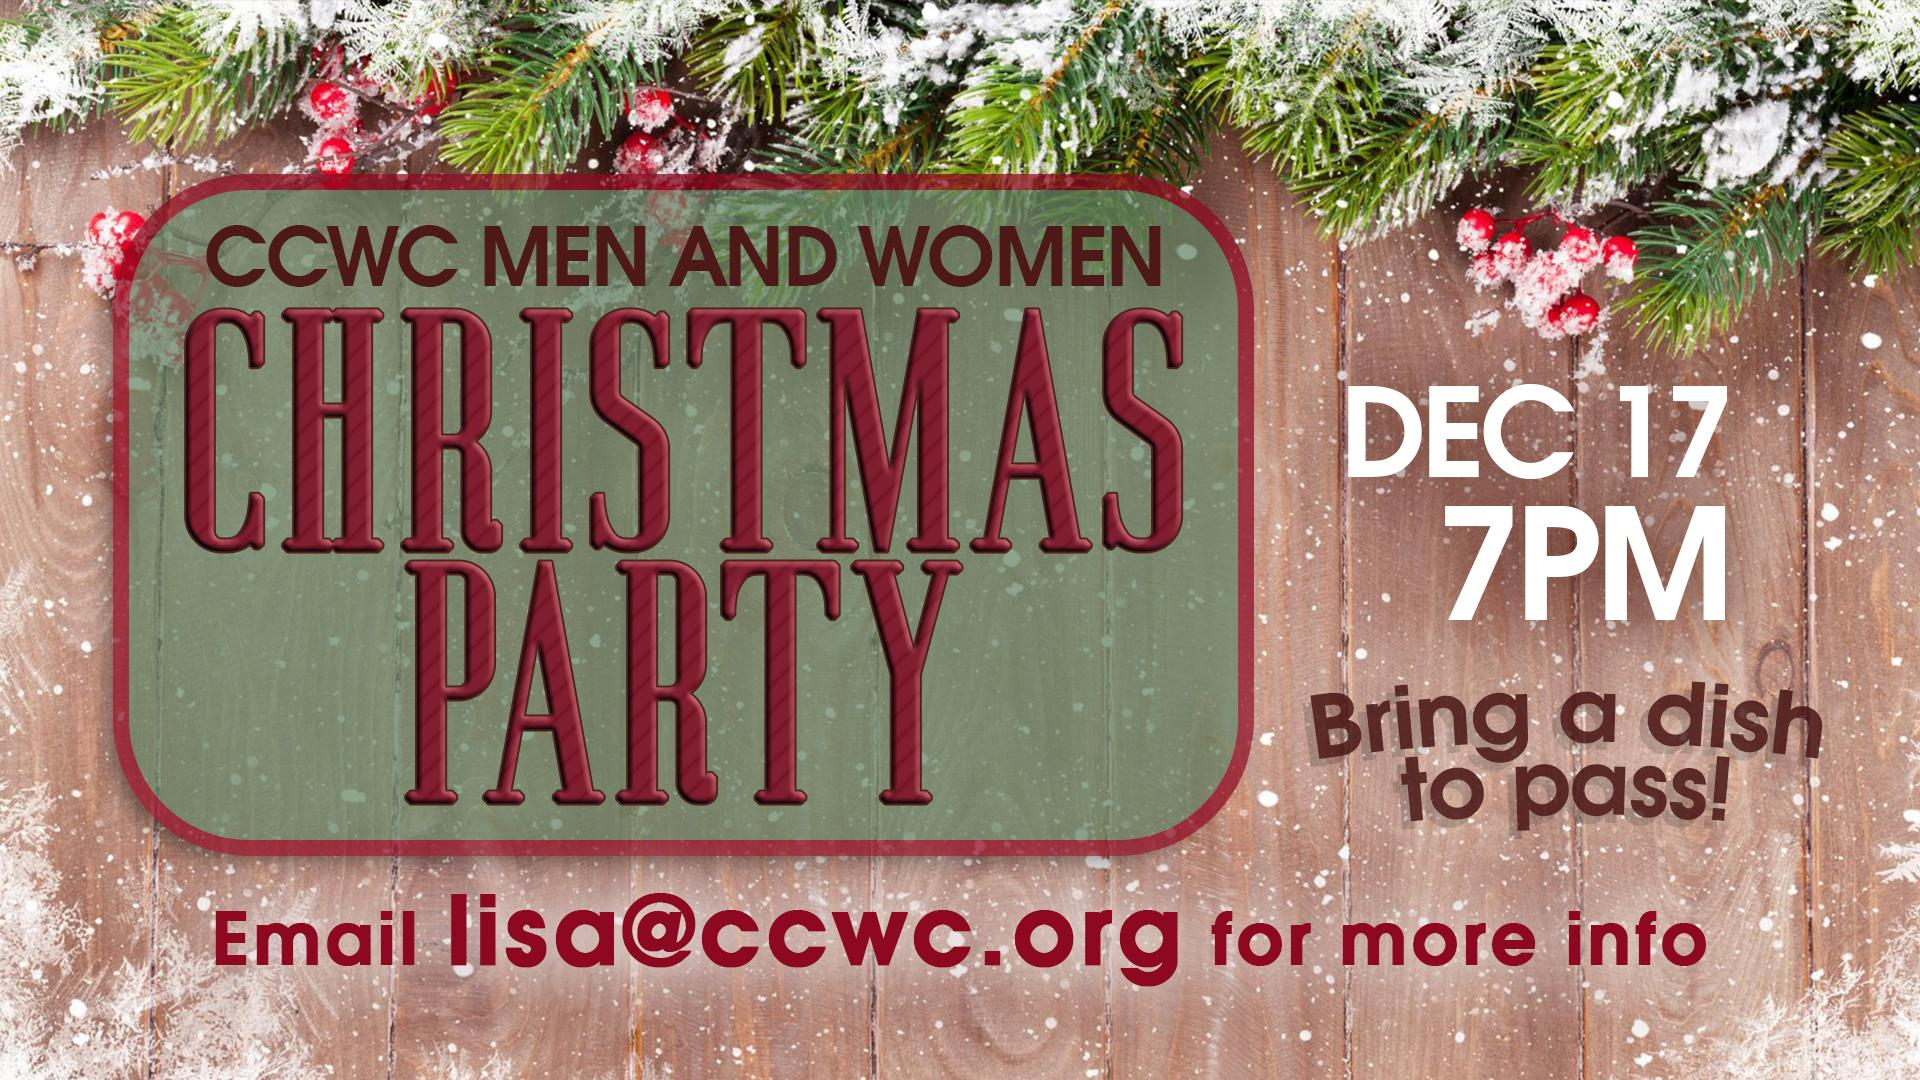 CCWC Mens & Womens Christmas Party